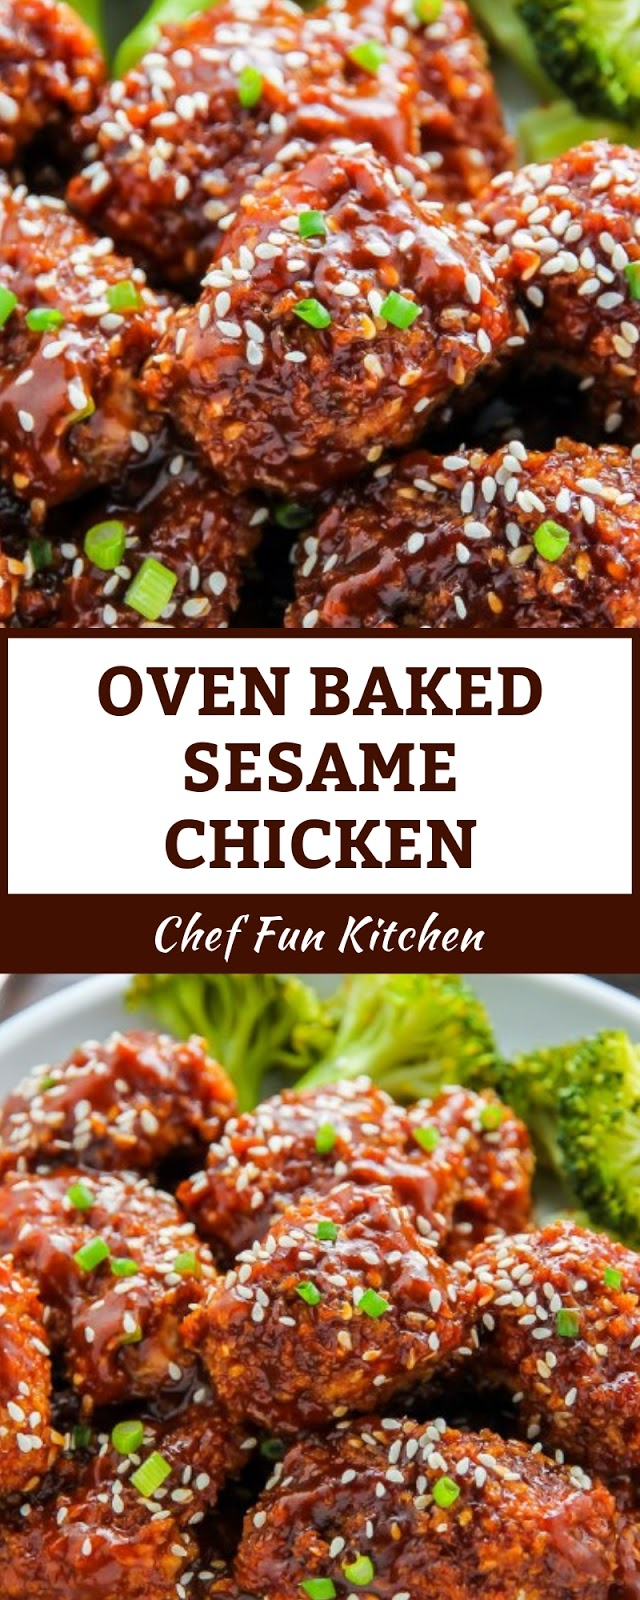 OVEN BAKED SESAME CHICKEN in 2020 (With images) | Beef ...